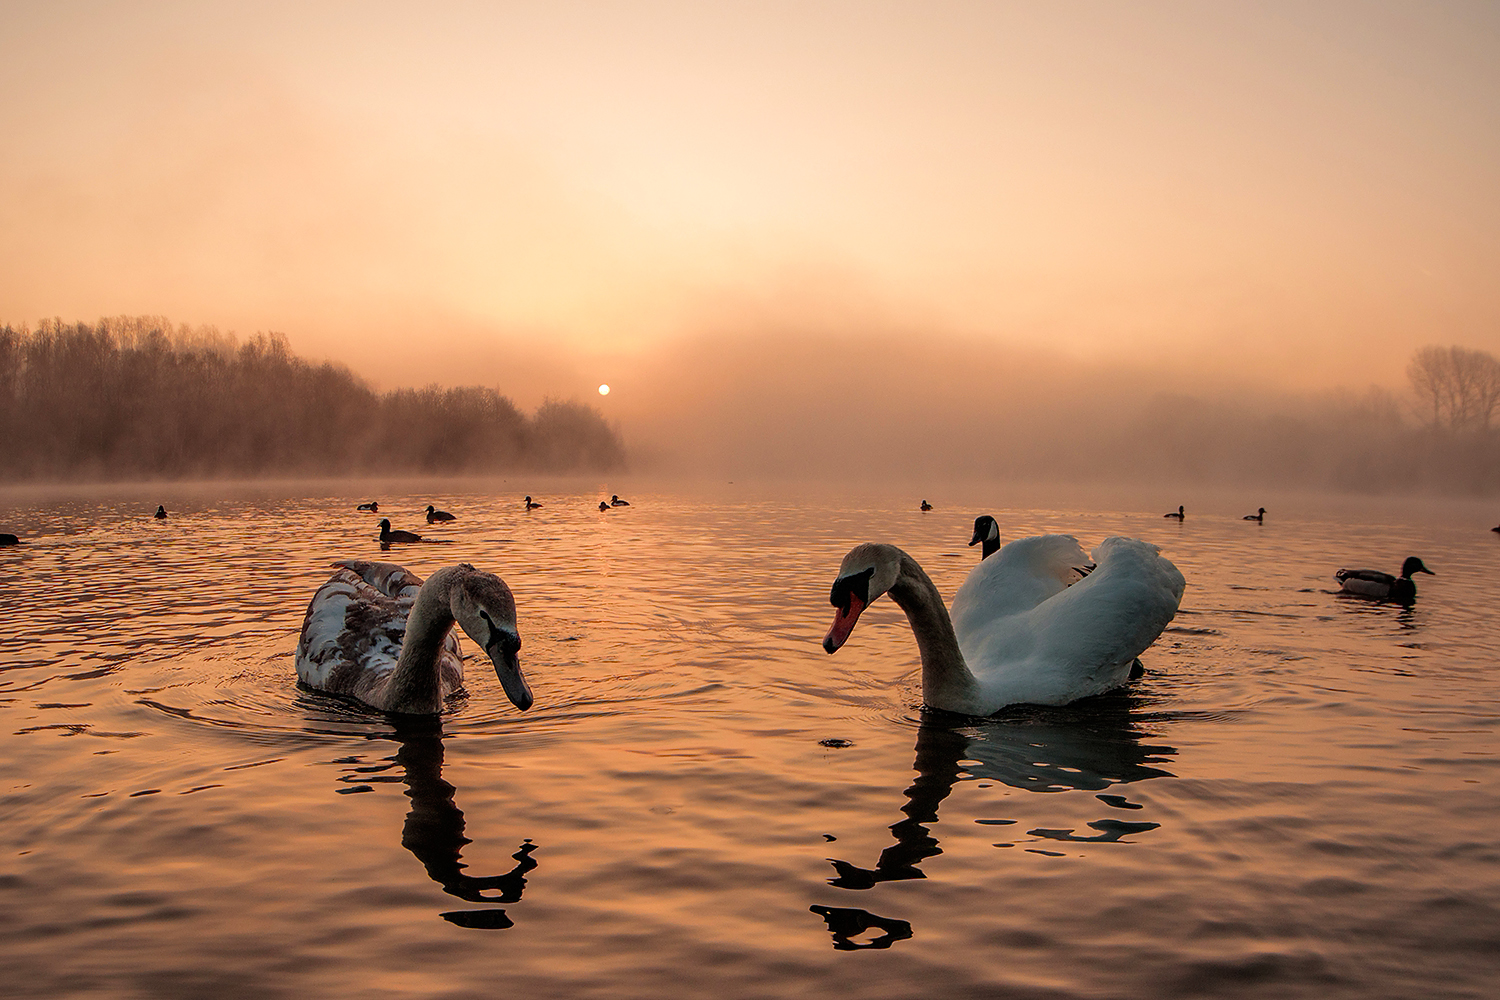 Swans on an early misty morning taken with an ultra wide lens